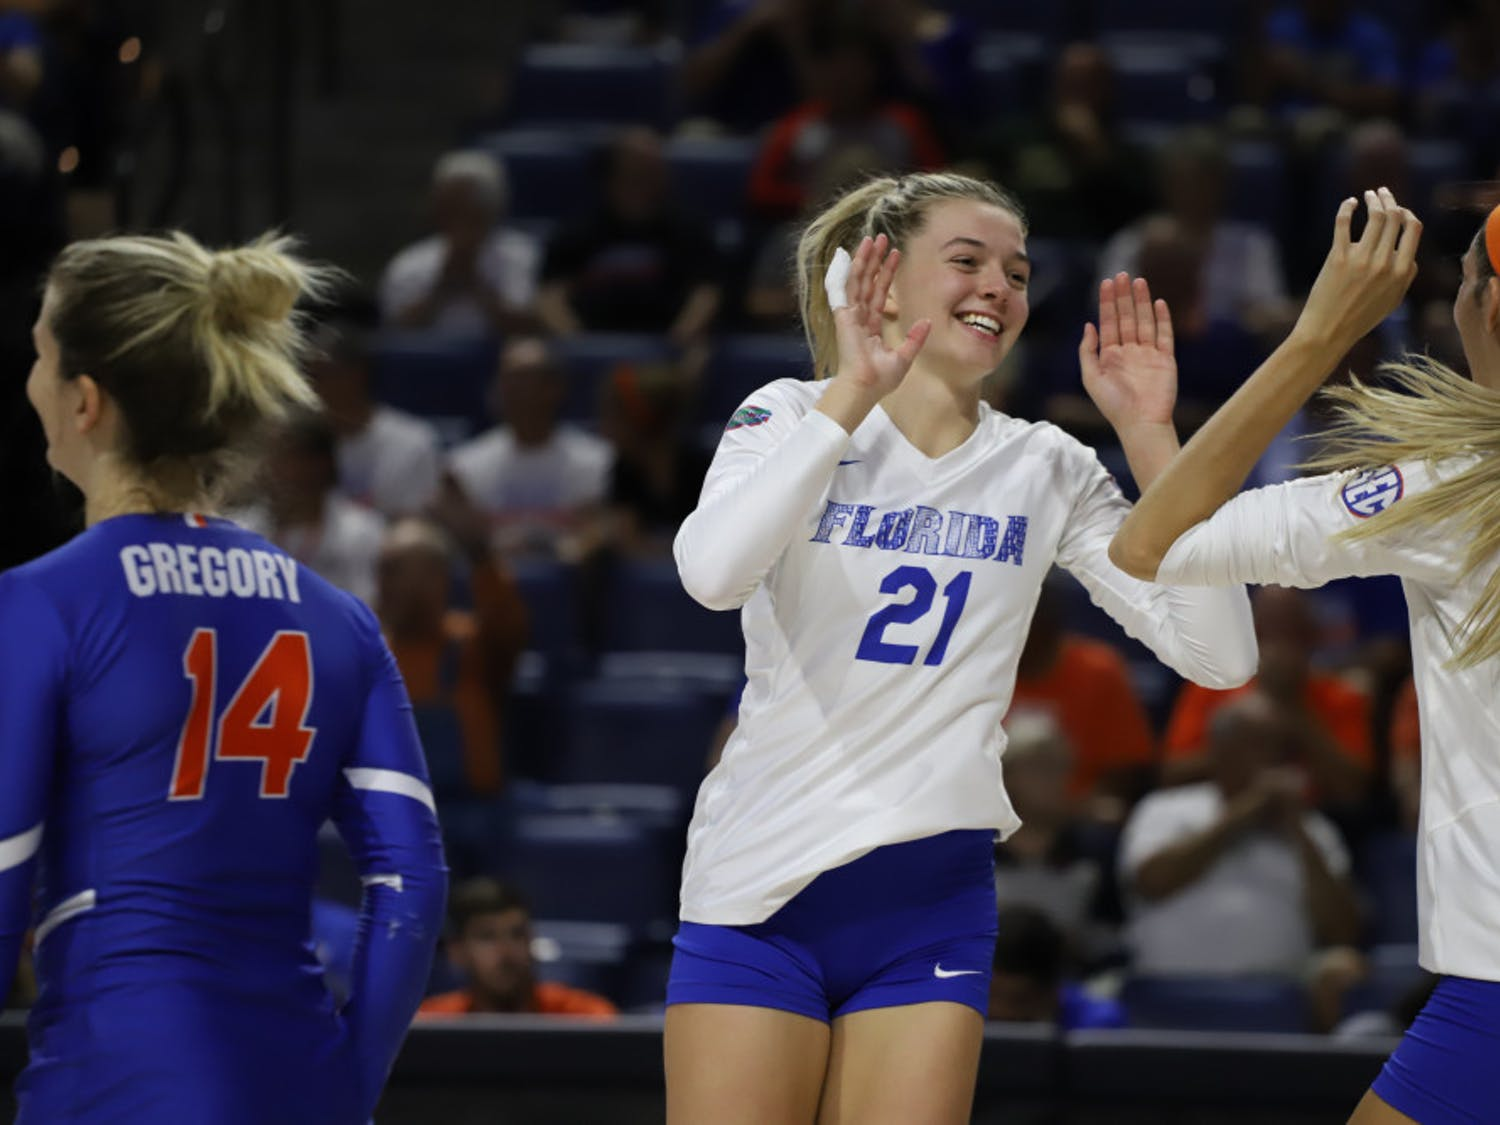 Setter Marlie Monserez has followed in her sisters' footsteps in becoming a leader for UF's volleyball team.